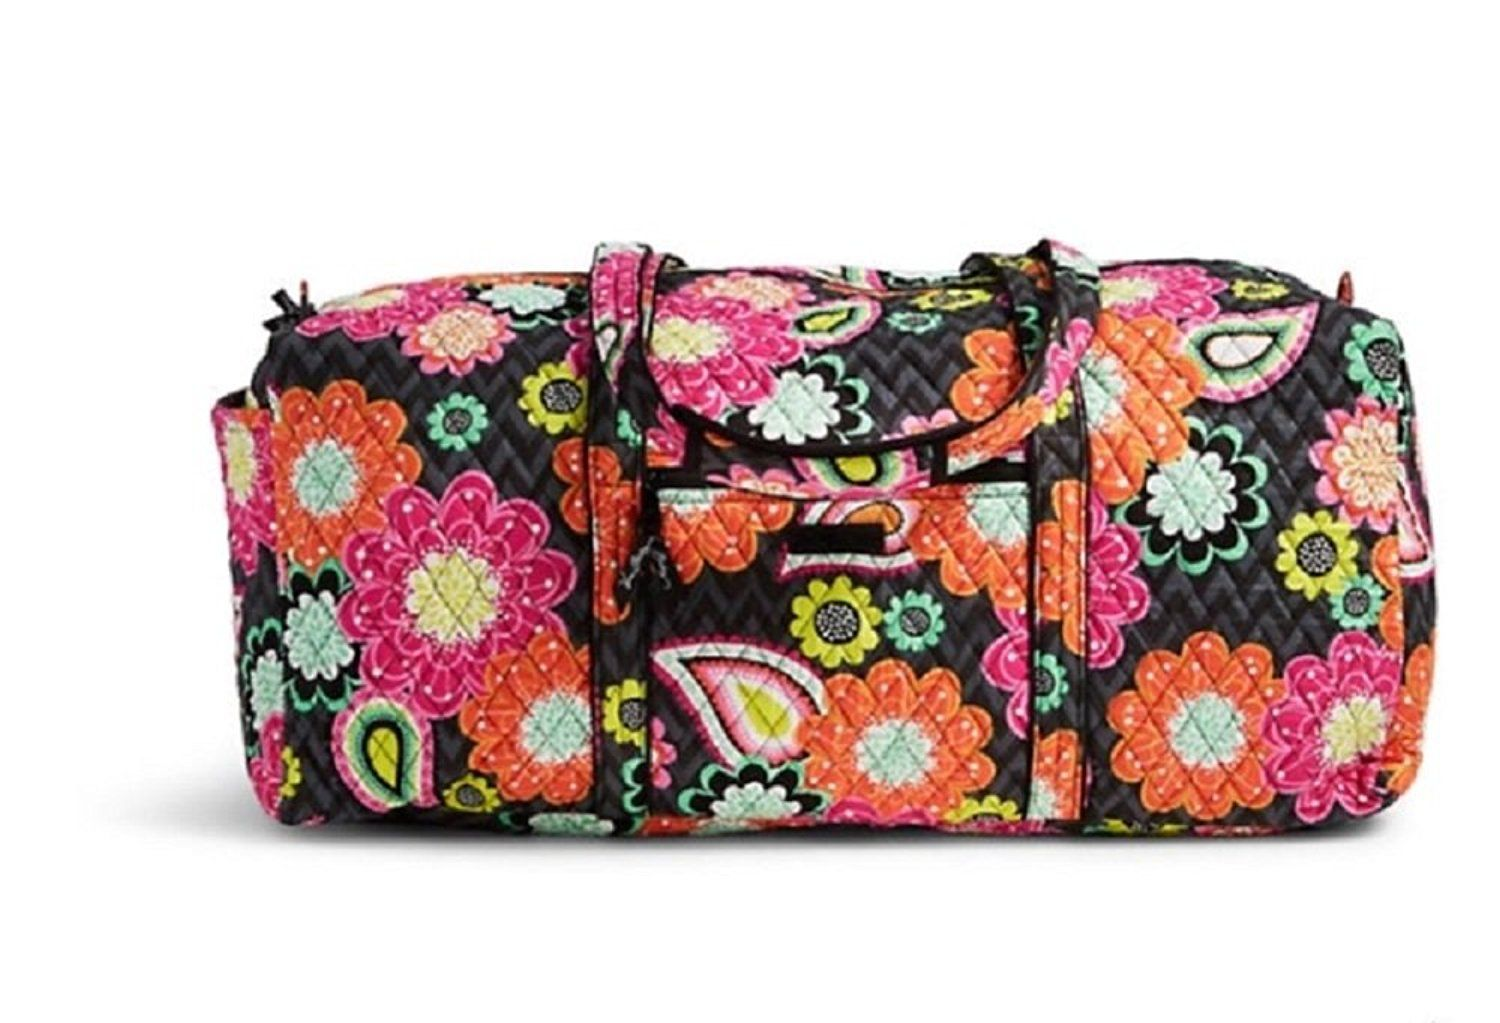 Vera Bradley Xl Duffel Read More At The Image Link This Is An Affiliate And I Receive A Commission For S